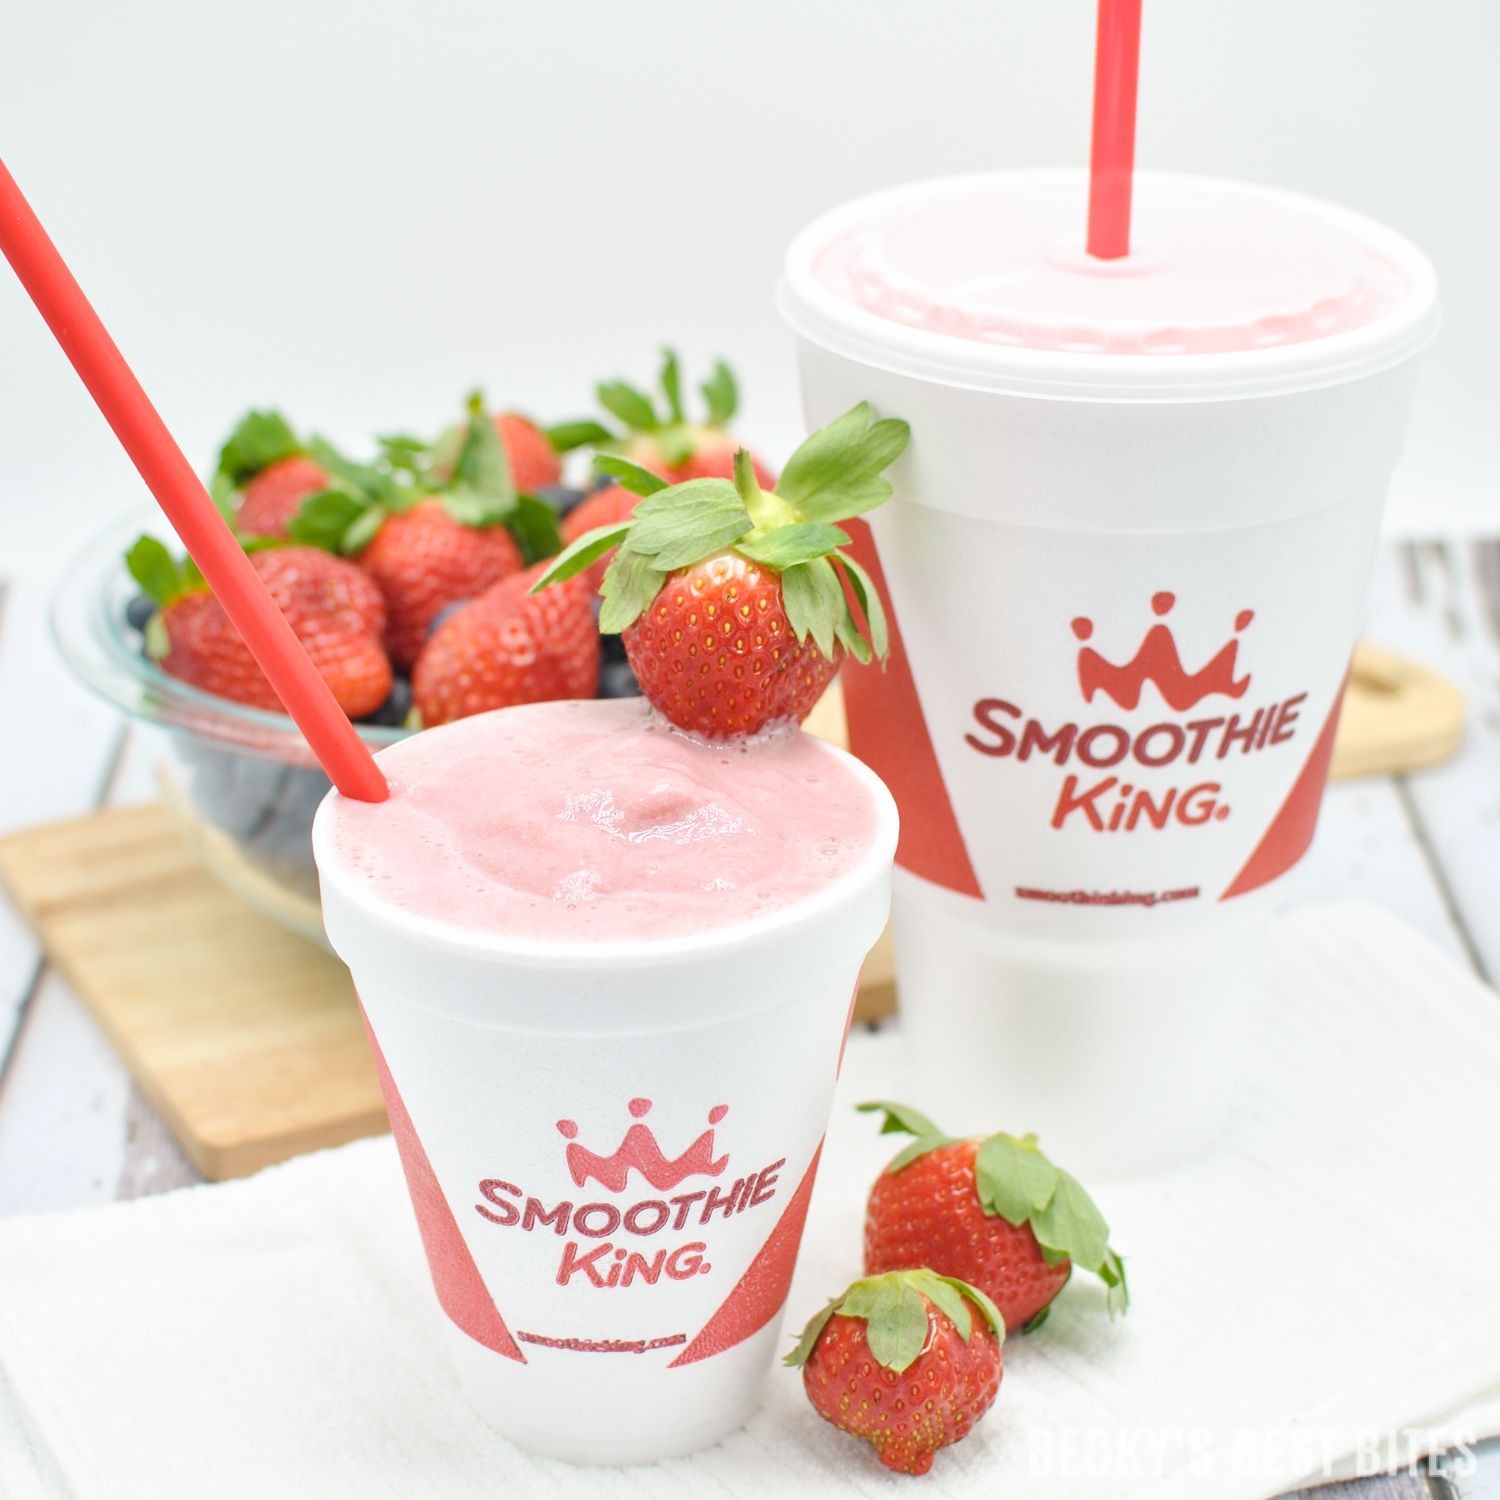 smoothie king Smoothie king address: 2311 jackson ave west #307, oxford, ms, 38655 tel:  662-259-2651 website:  .